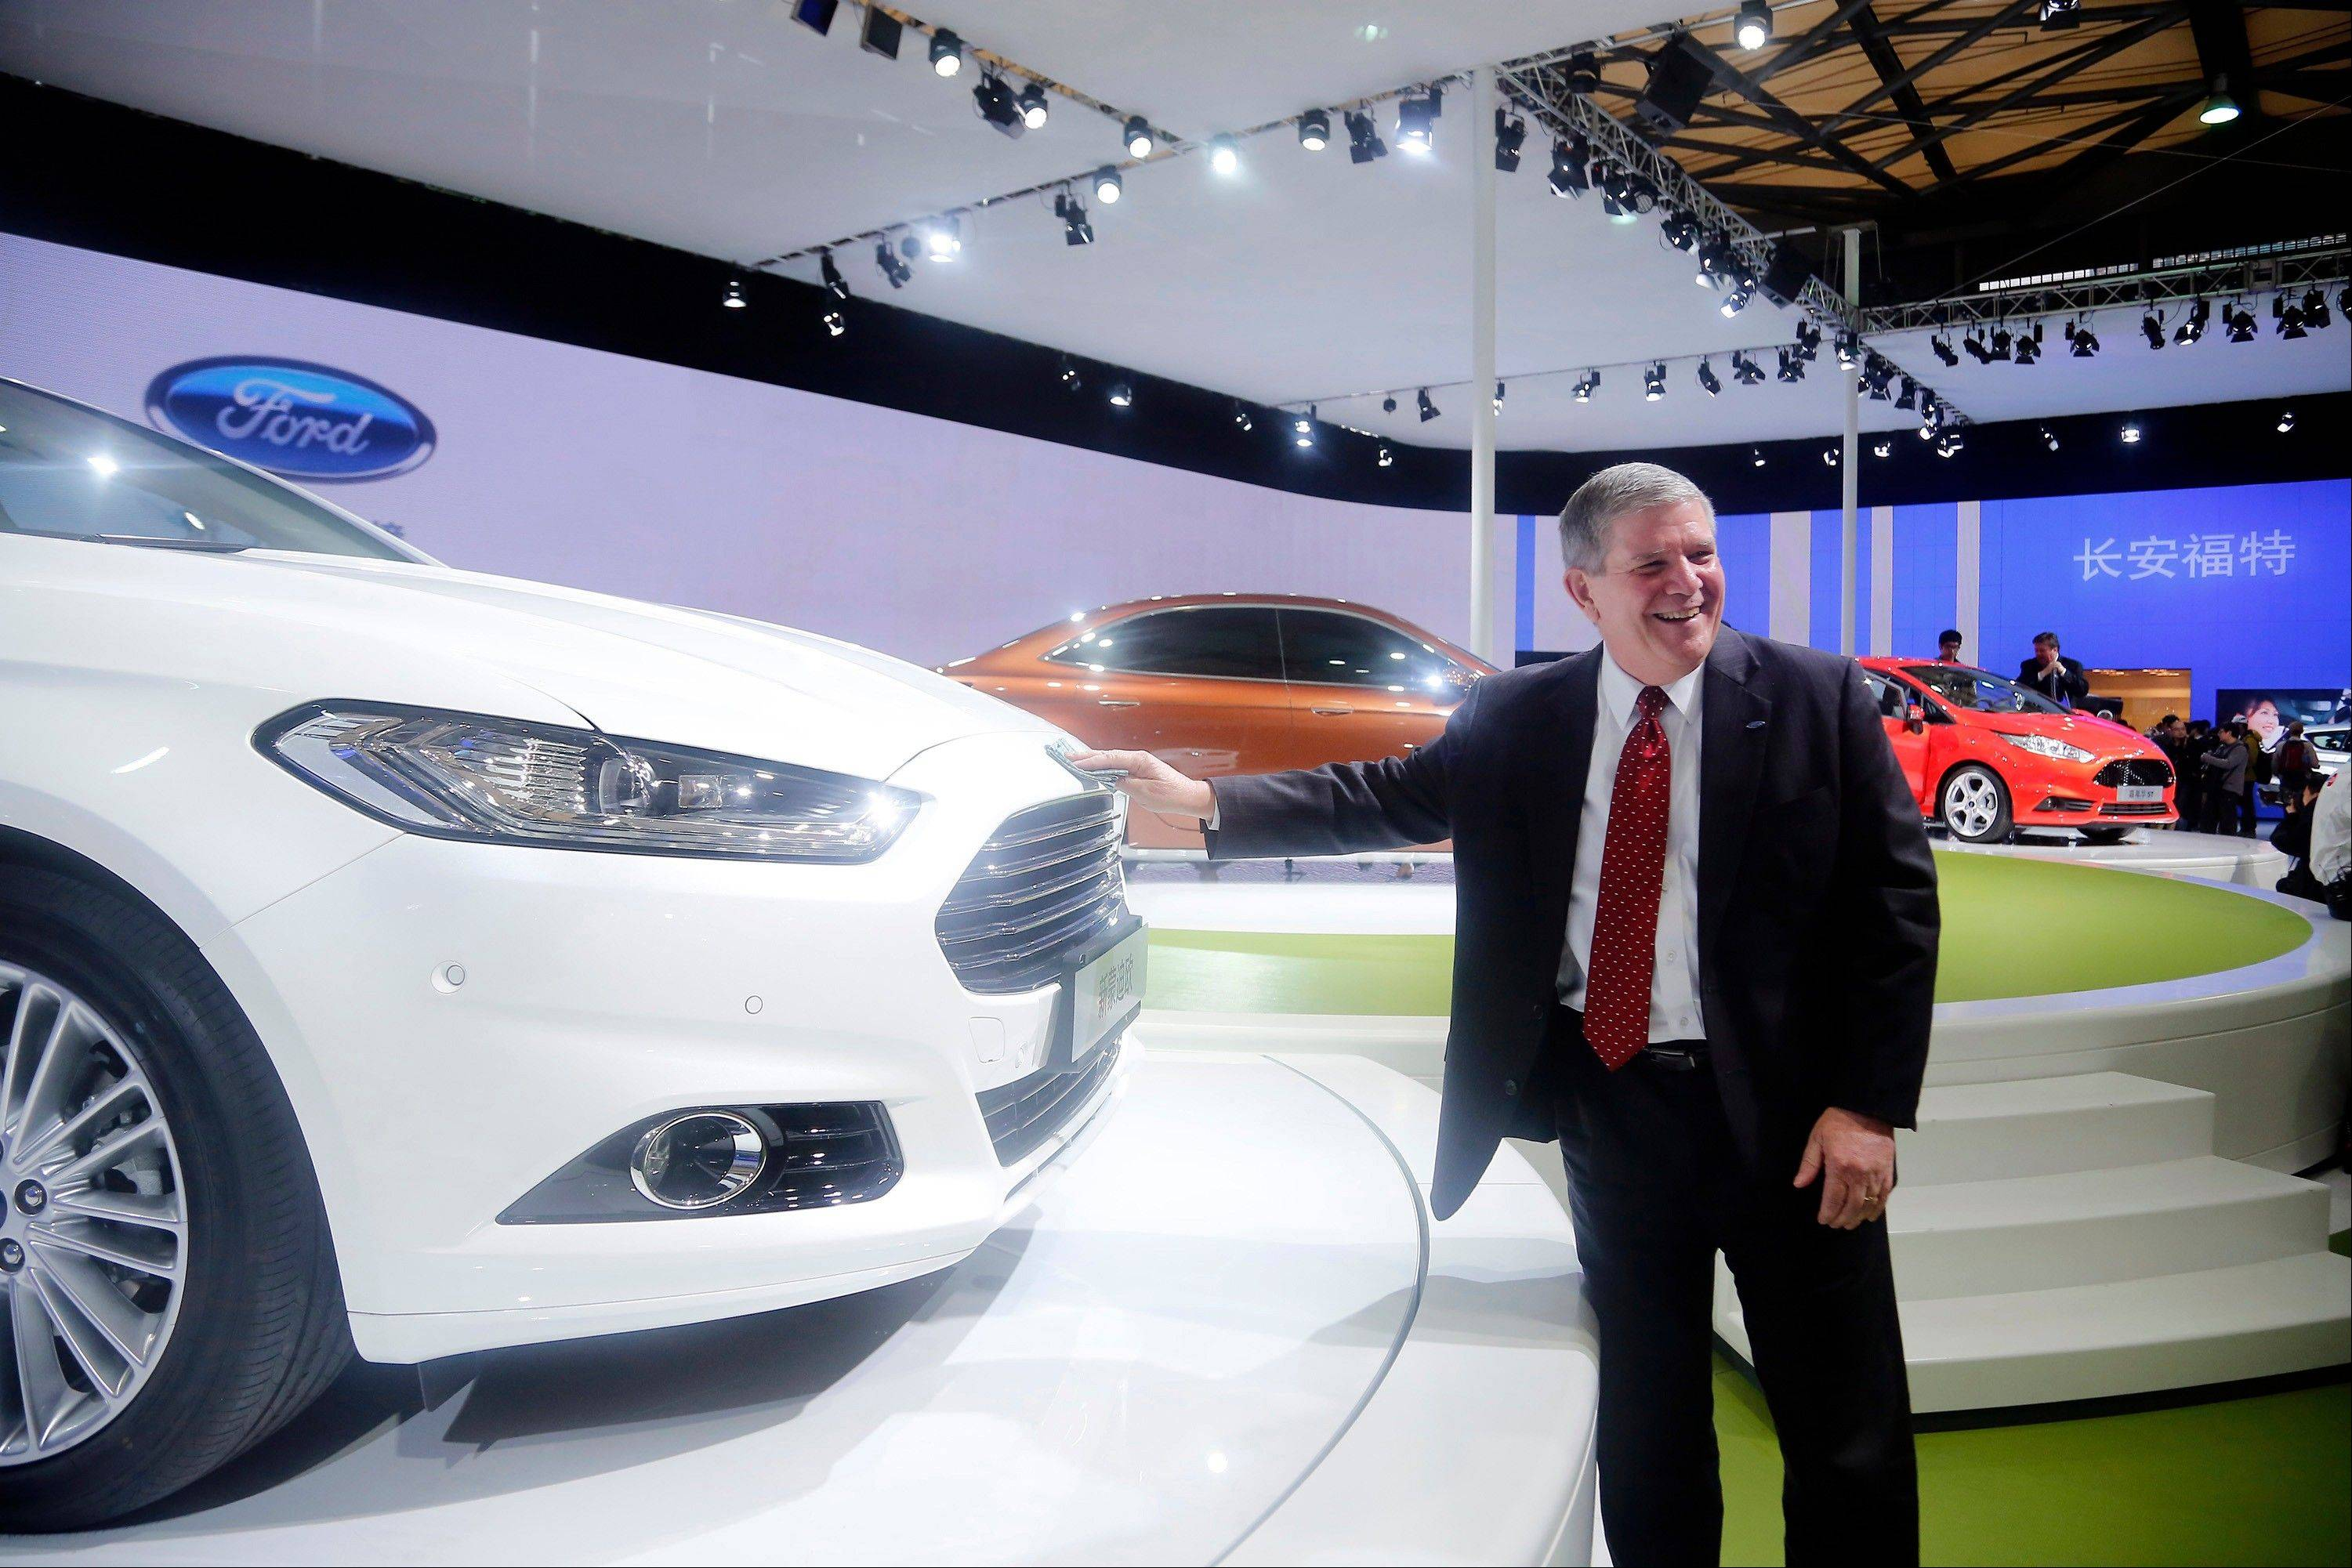 In this photo taken April 20, 2013, David Schoch, Ford Motor Company group vice president and president, Asia Pacific, poses for photos by Ford's new Mondeo car at the Shanghai Auto Show in Shanghai, China. Late to the Chinese auto market, Ford aims to catch up with new cars, new plants, and a new attitude.